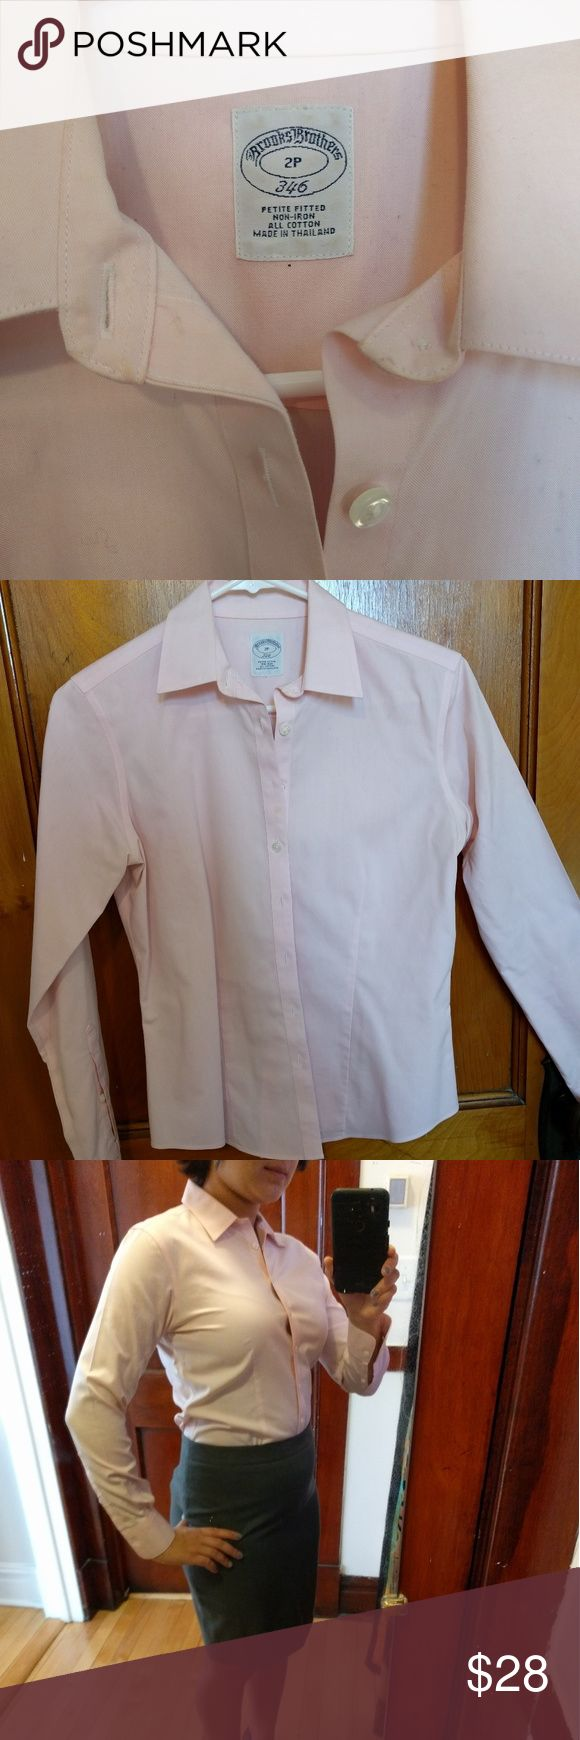 Like New Brooks Brothers Non-Iron Dress Shirt Pastel pink Brooks Brothers Non-Iron Tailored-Fit Dress Shirt in 2P. This is a petite sized shirt and true to size. Barely worn. Like new condition. Brooks Brothers Tops Button Down Shirts